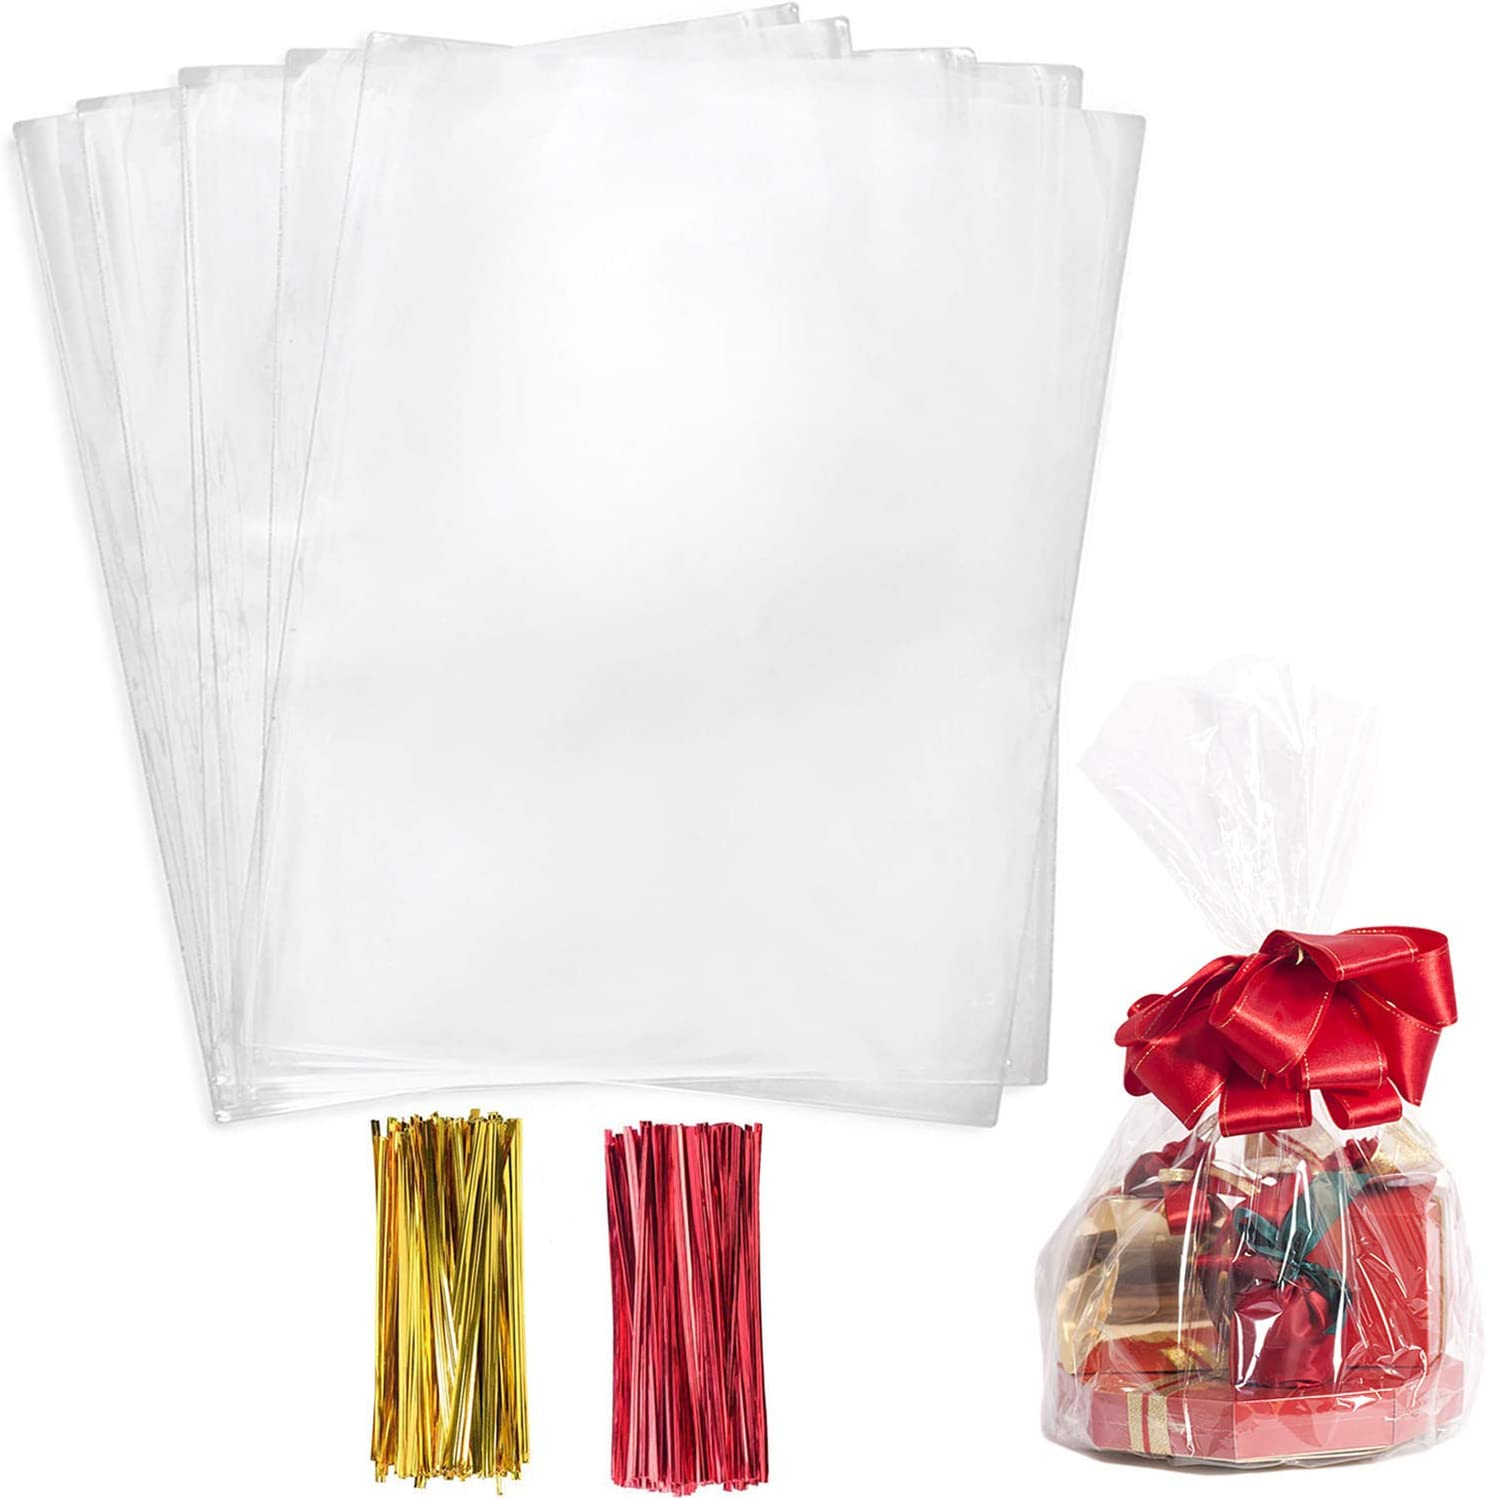 Cello Cellophane Treat Bags,200 PCS Clear Pastic Gift Bags with Twist Ties,Party Favor Bags (8